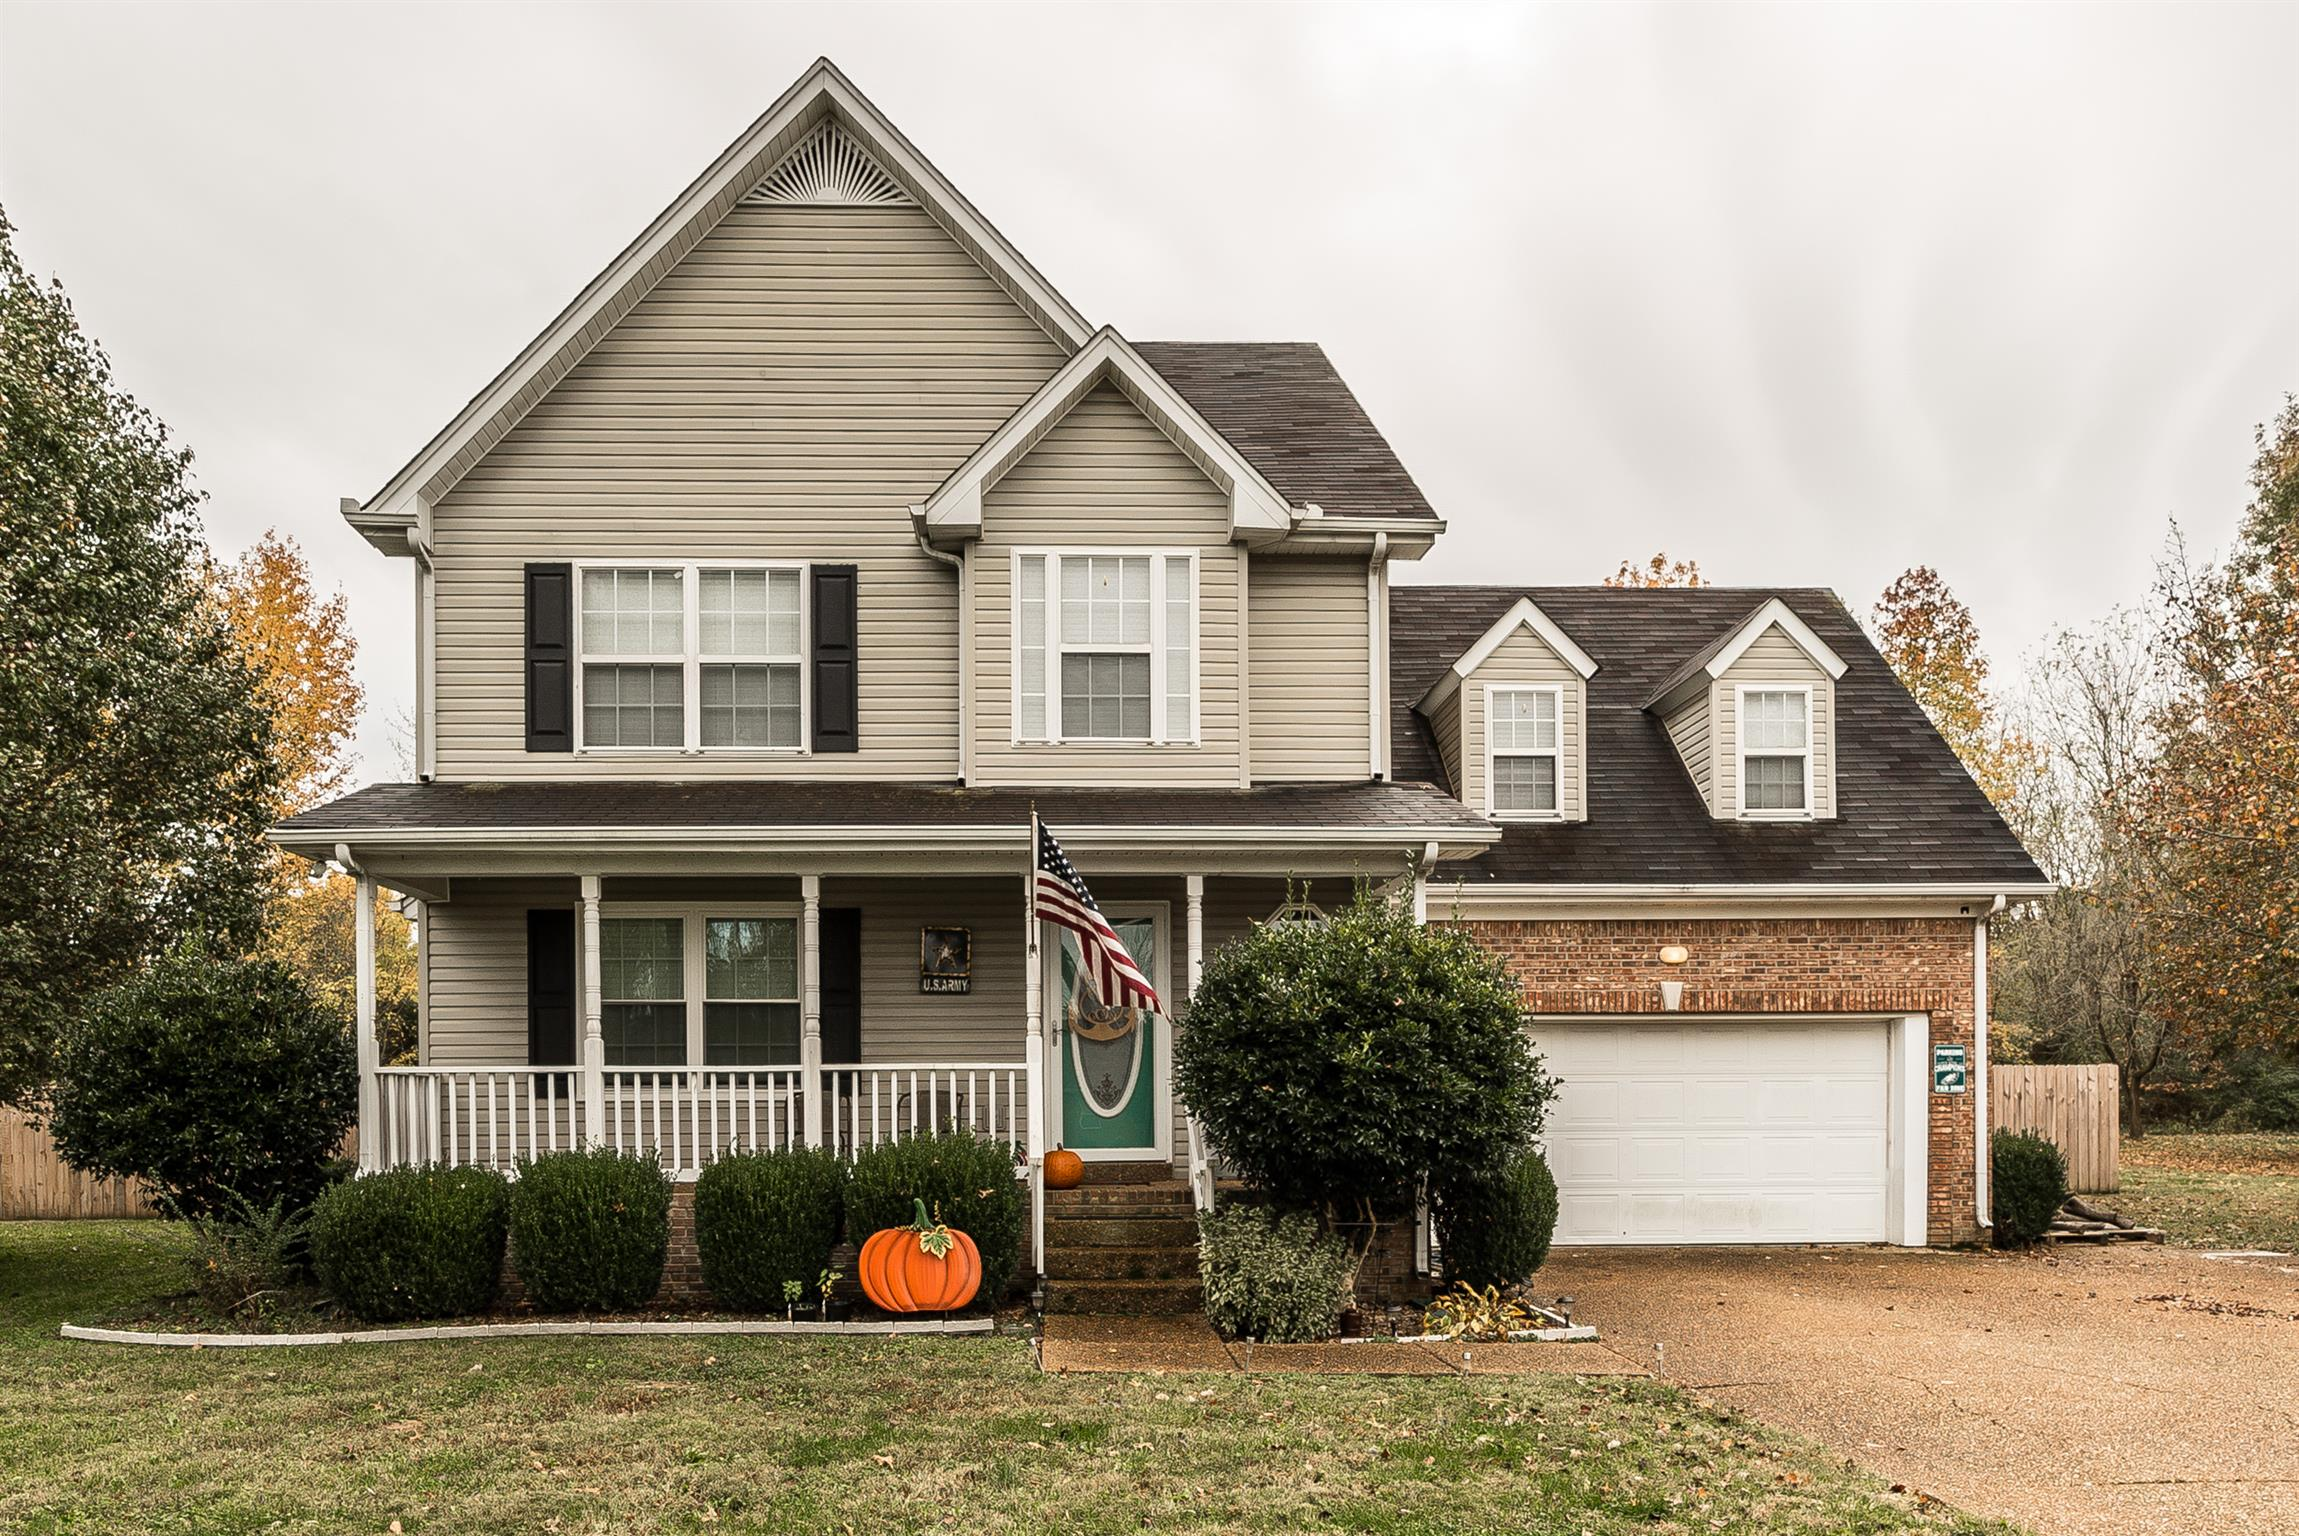 Charming Updated Home For Sale at 148 Cody Ct Portland TN